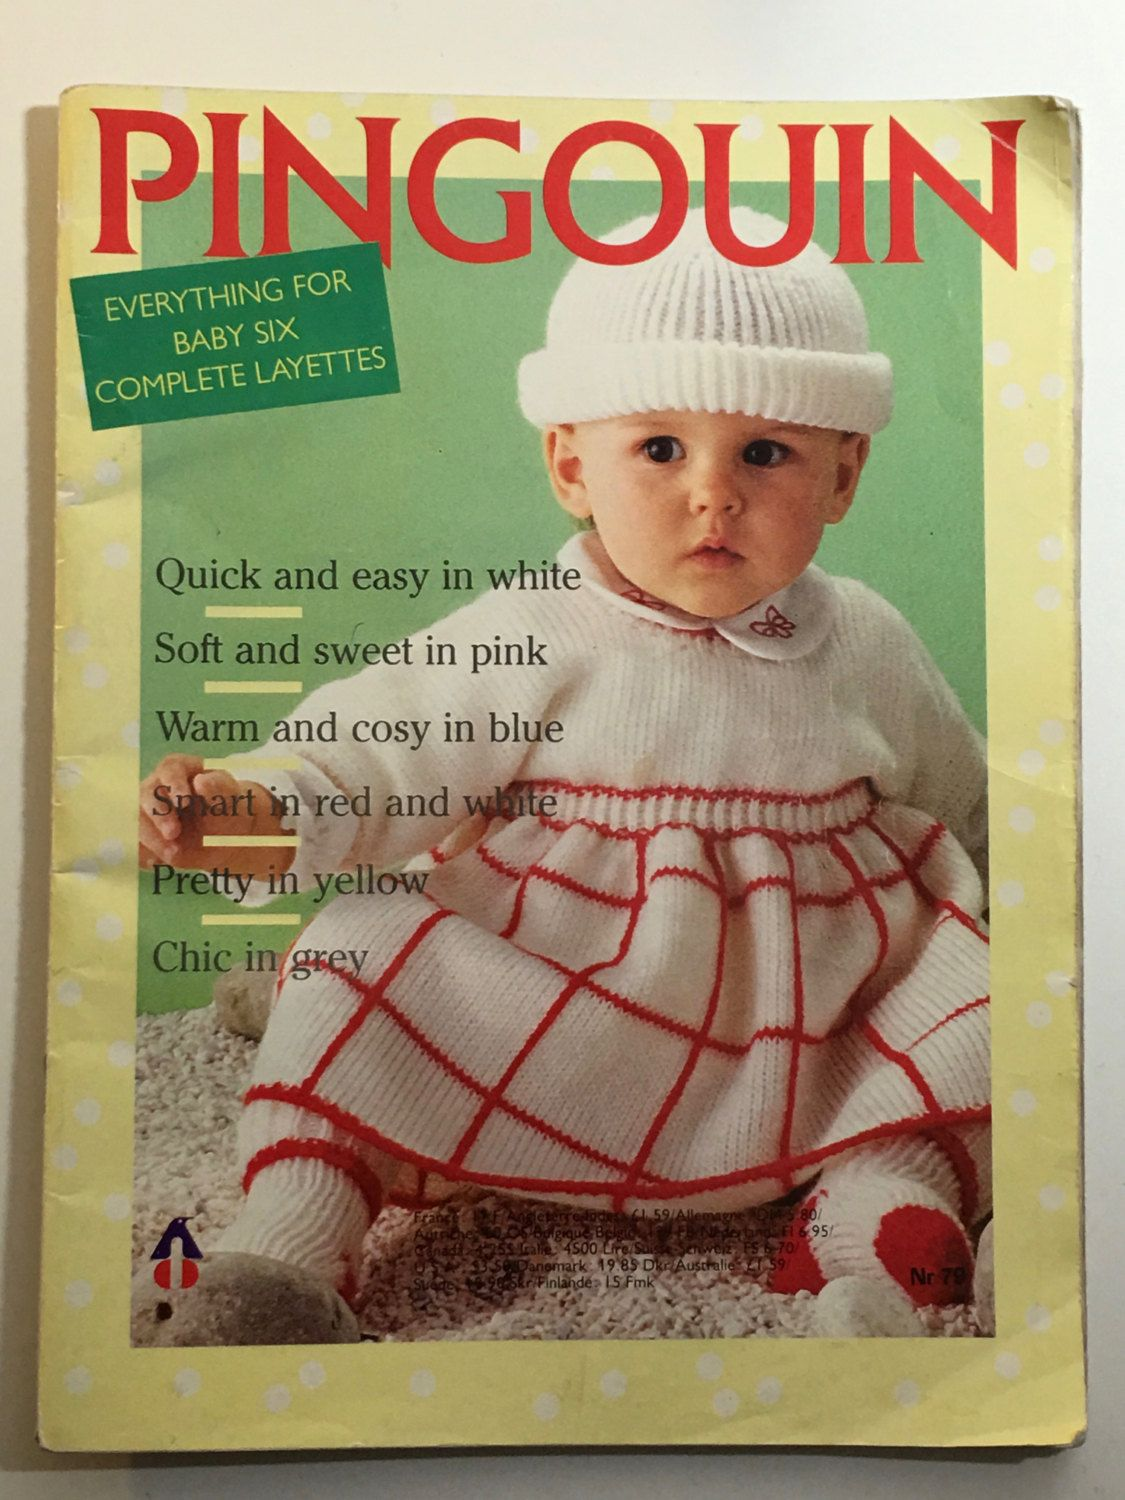 Penguin French vintage classic knitting book pingouin everything for ...